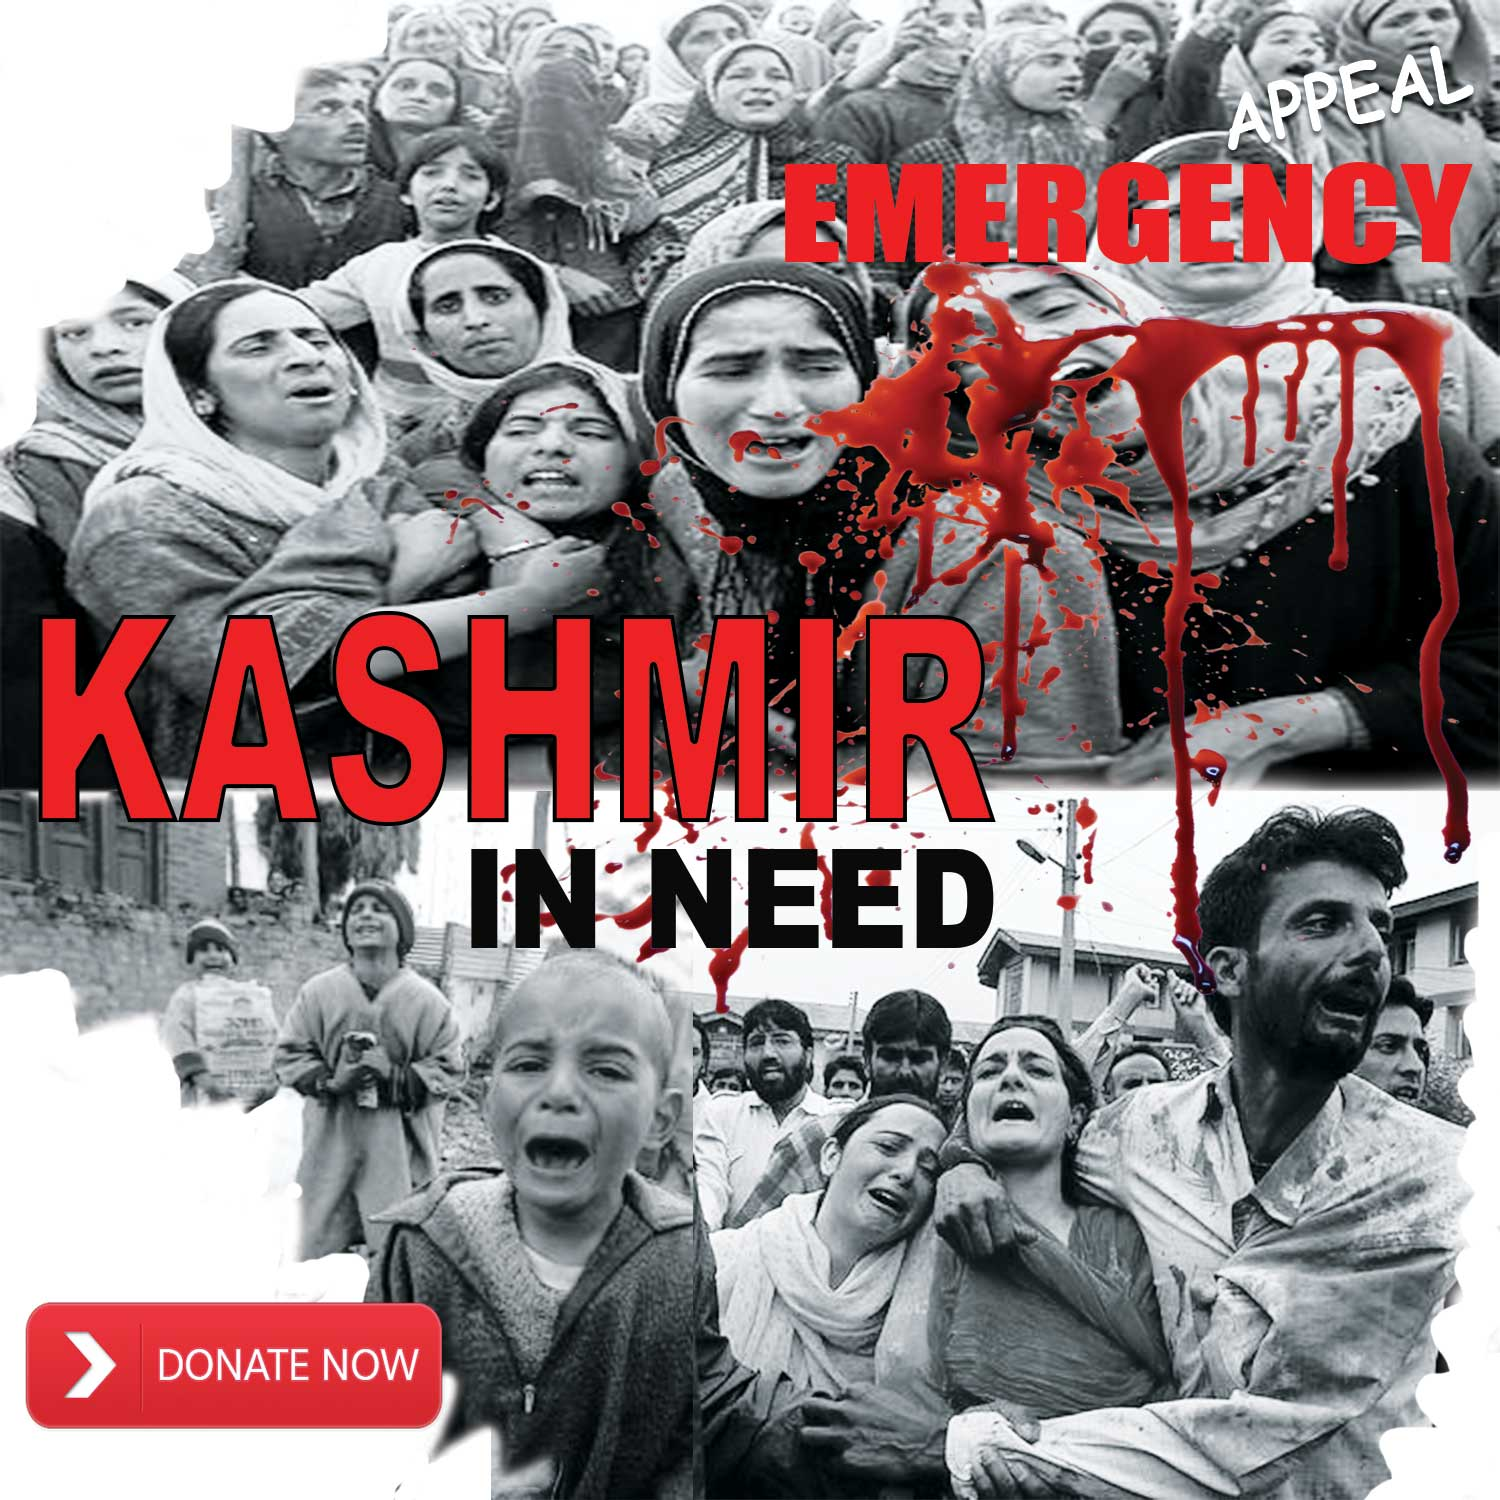 Muslim Charity | 100% Donation Policy | Donate Now & Save